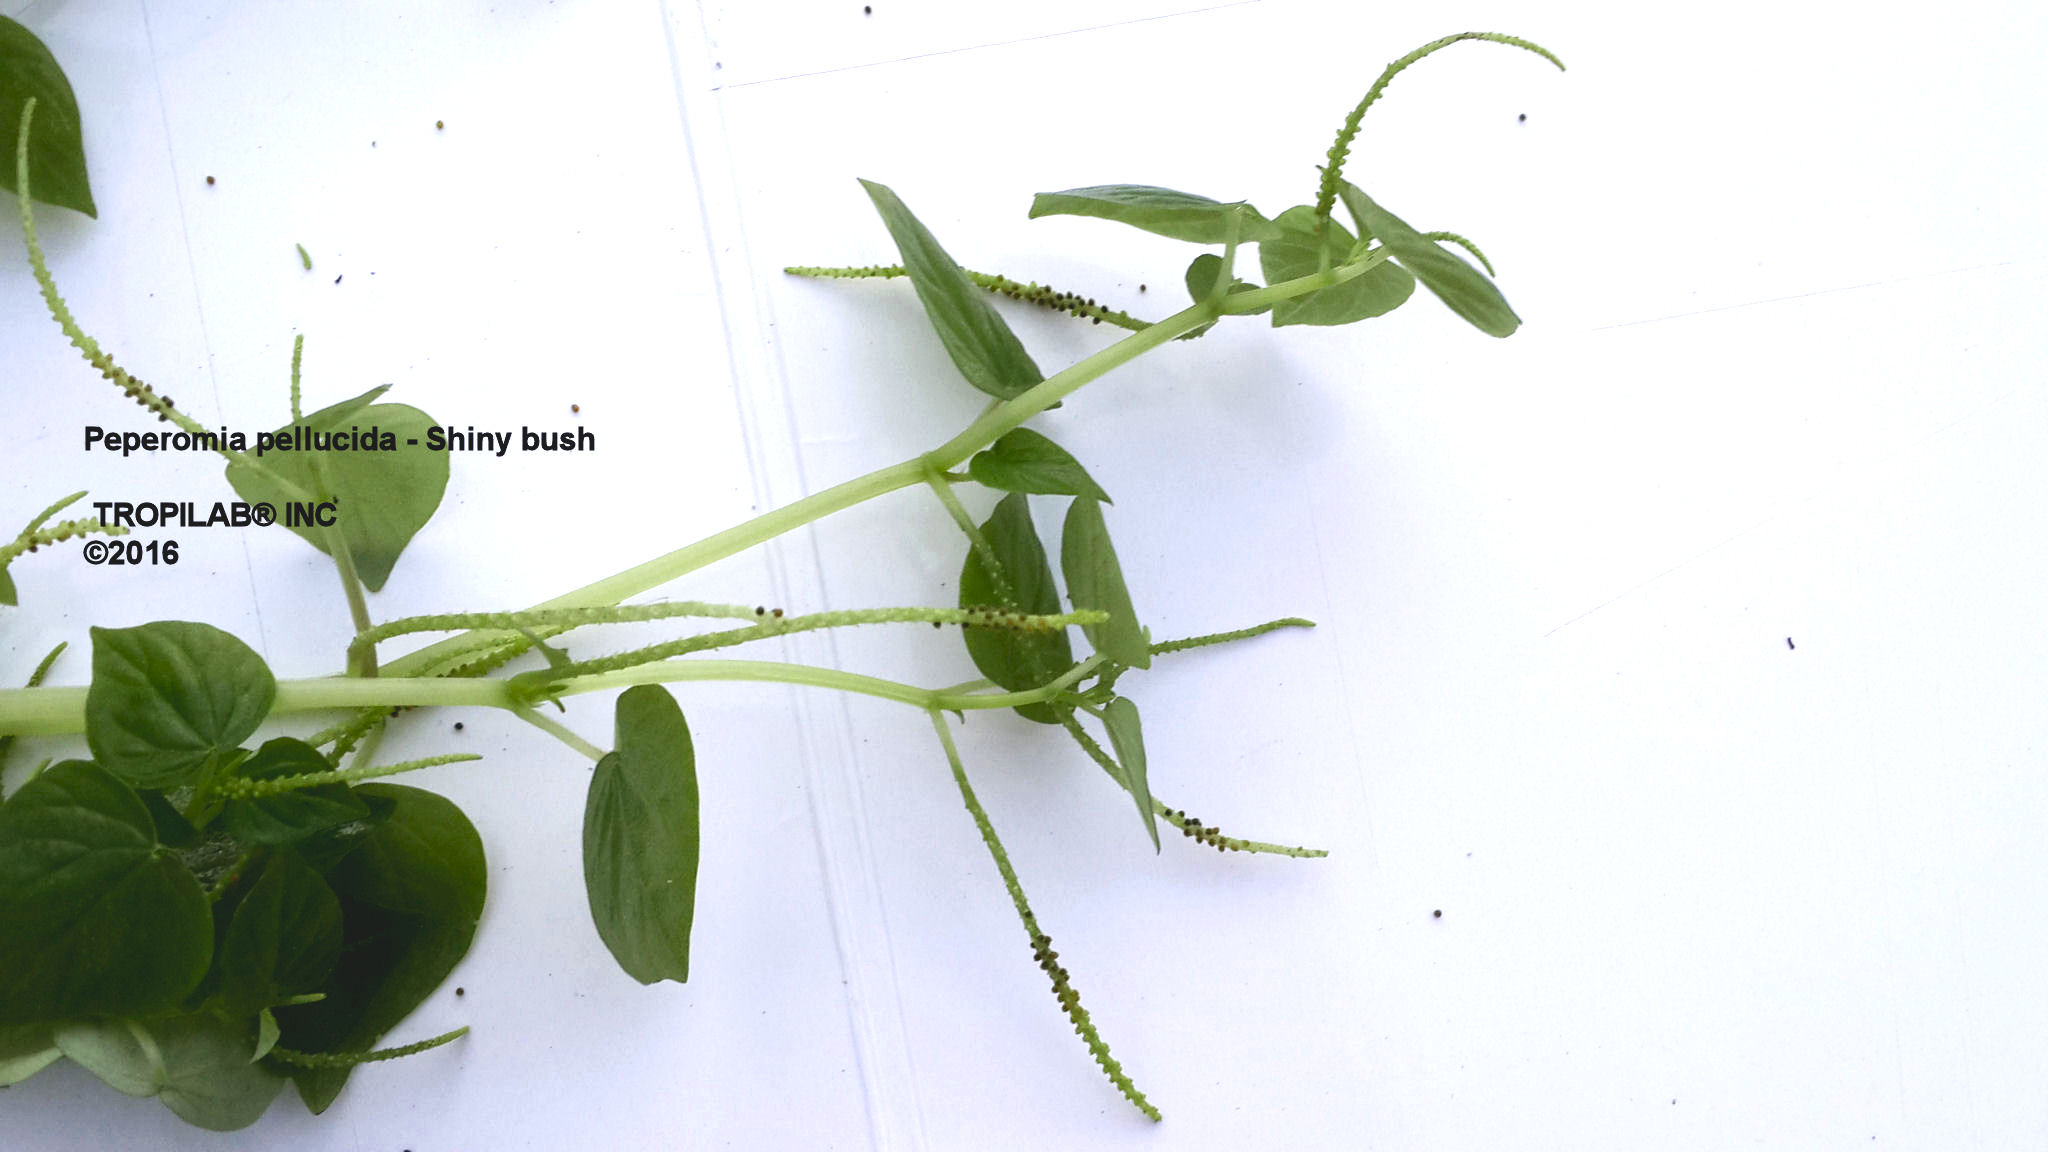 Peperomia pellucida - Shiny bush seeds